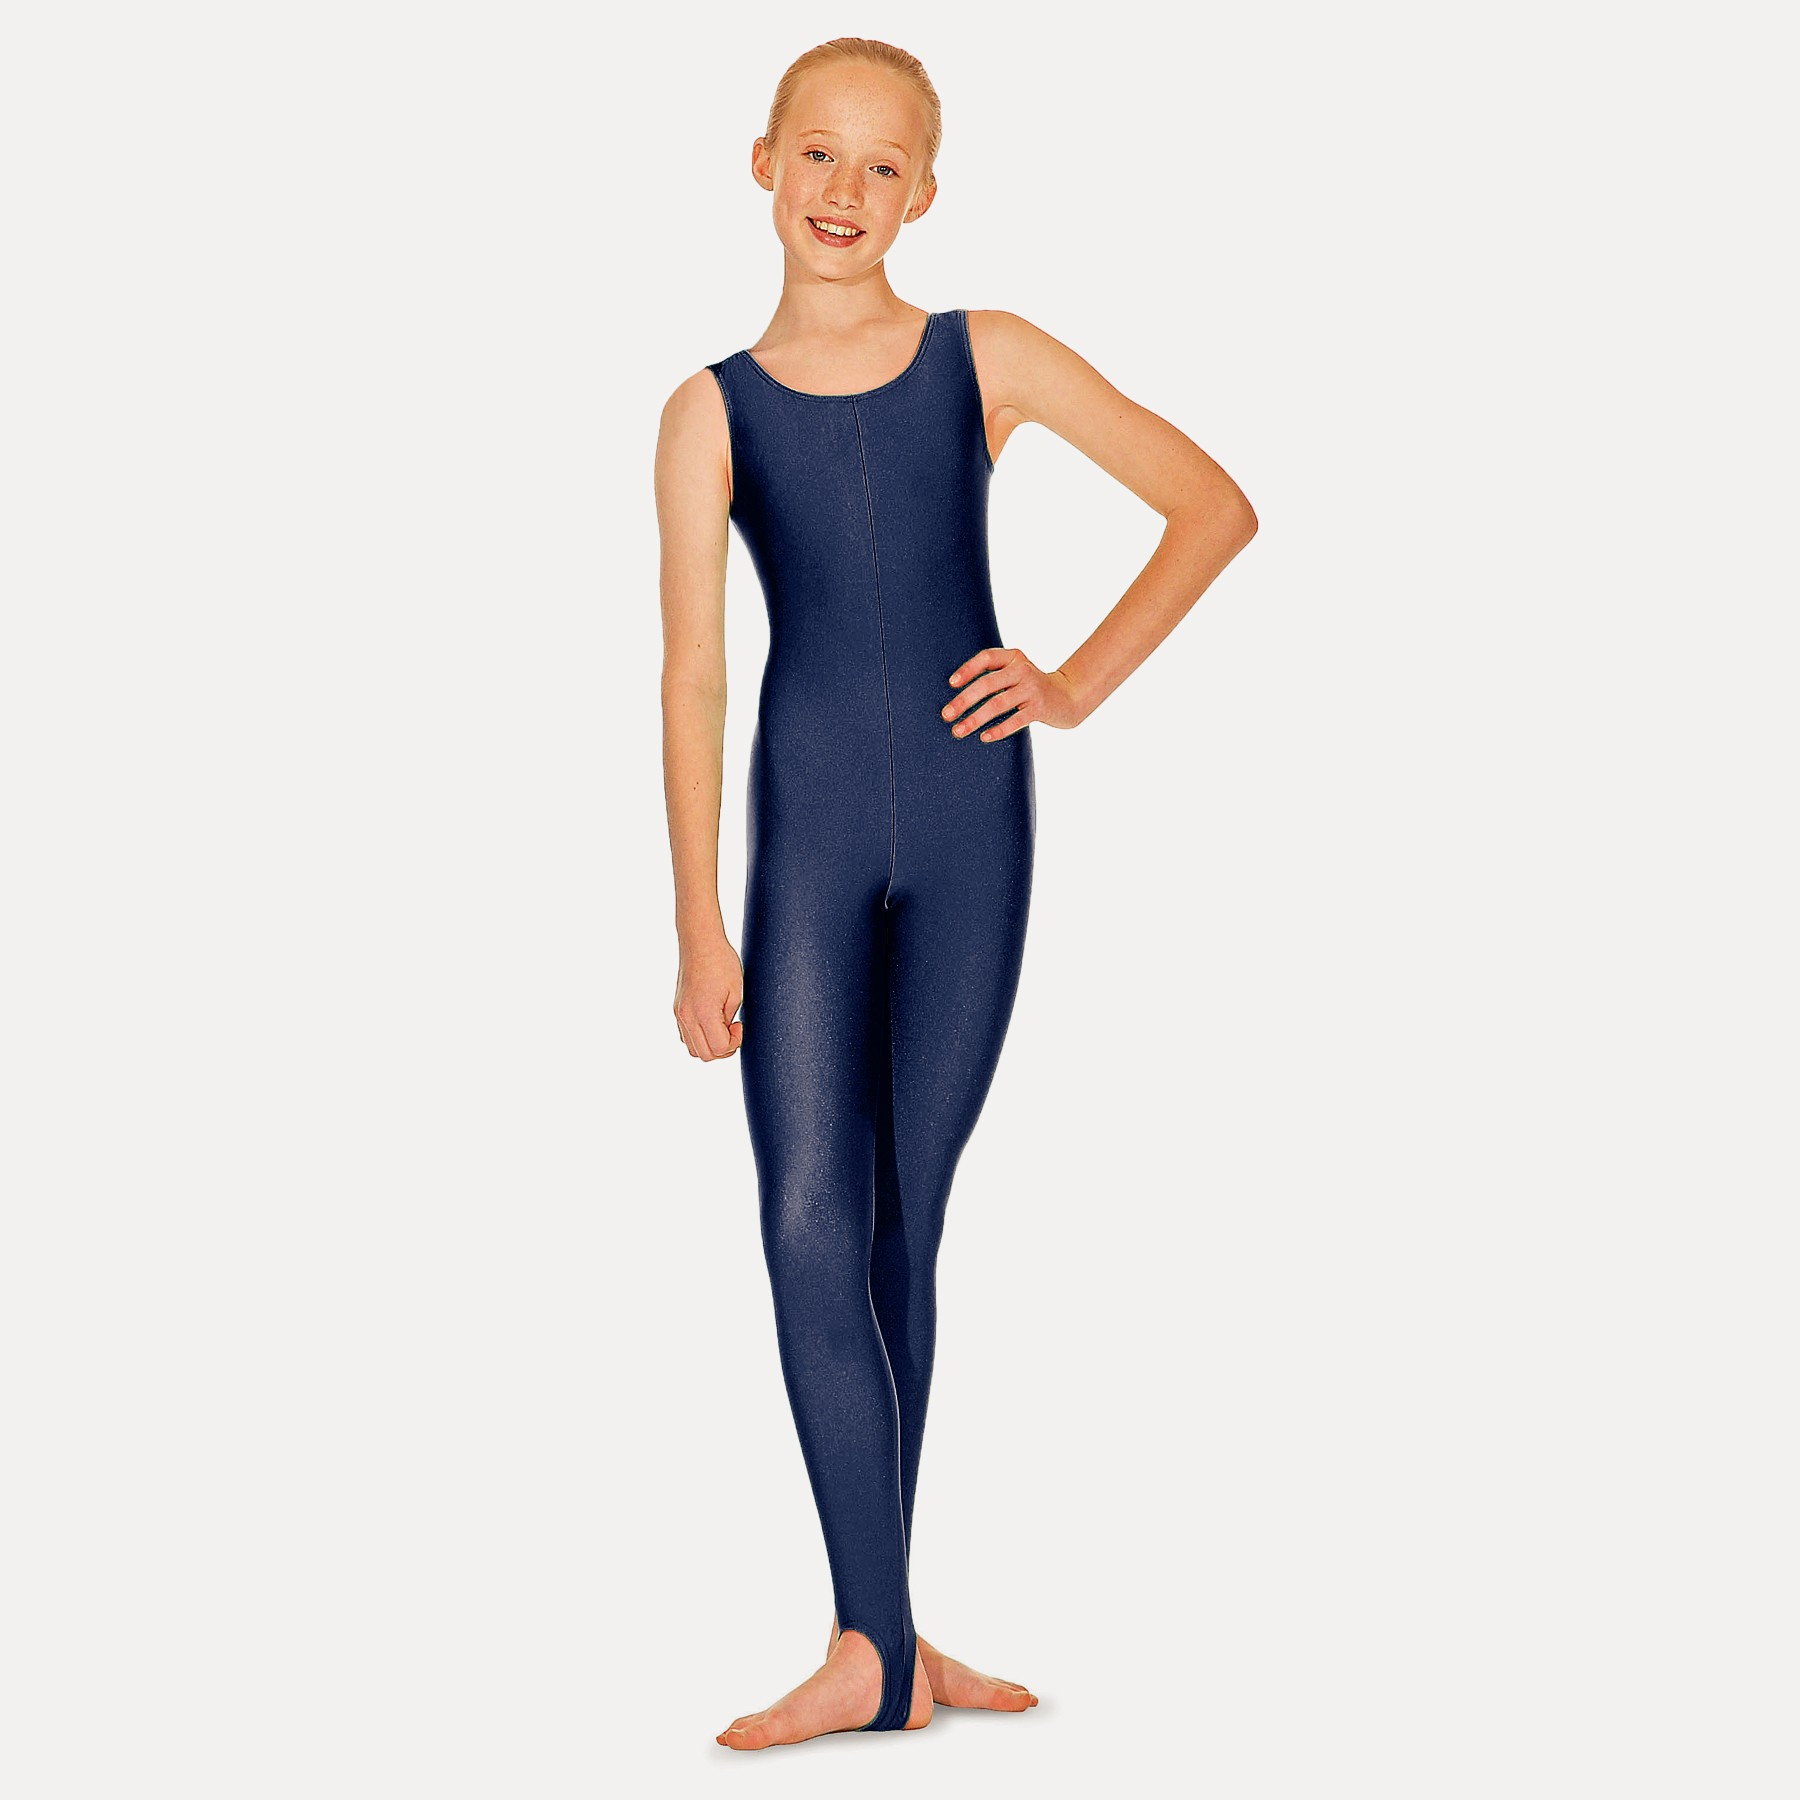 Roch Valley Nylon Lycra Sleeveless Stirrup Catsuit (Navy Blue)